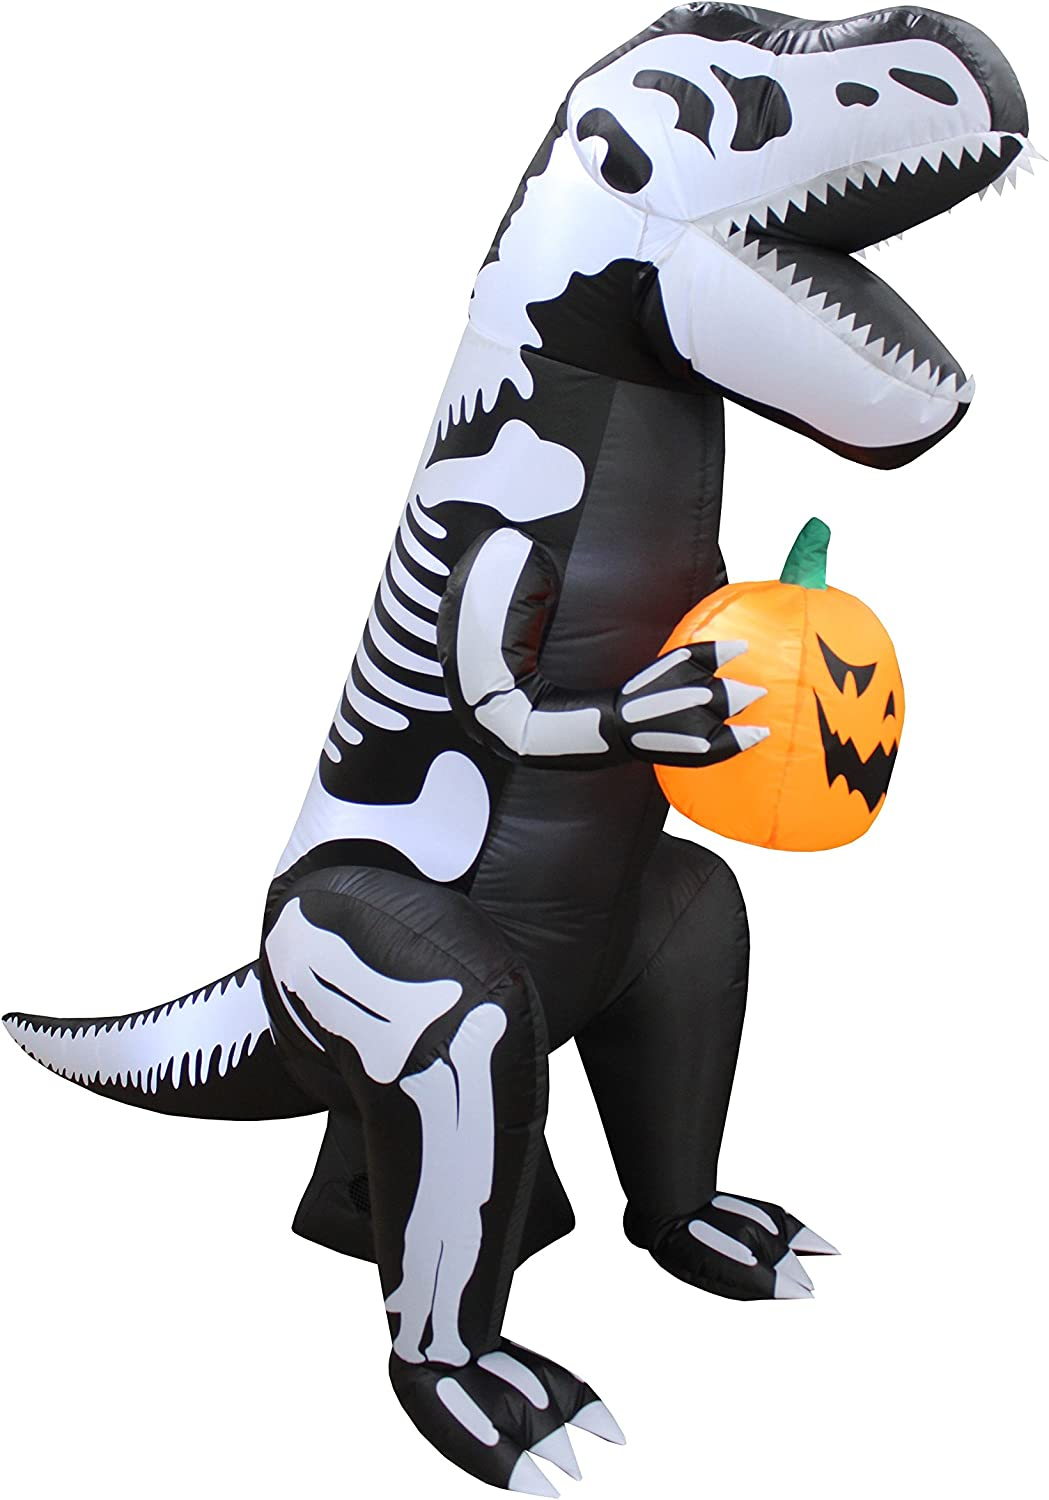 BZB Goods 6 Foot Tall Halloween Inflatable Skeleton Dinosaur Tyrannosaurus T-Rex with Pumpkin Lights Lighted Blowup Party Decoration for Outdoor ...